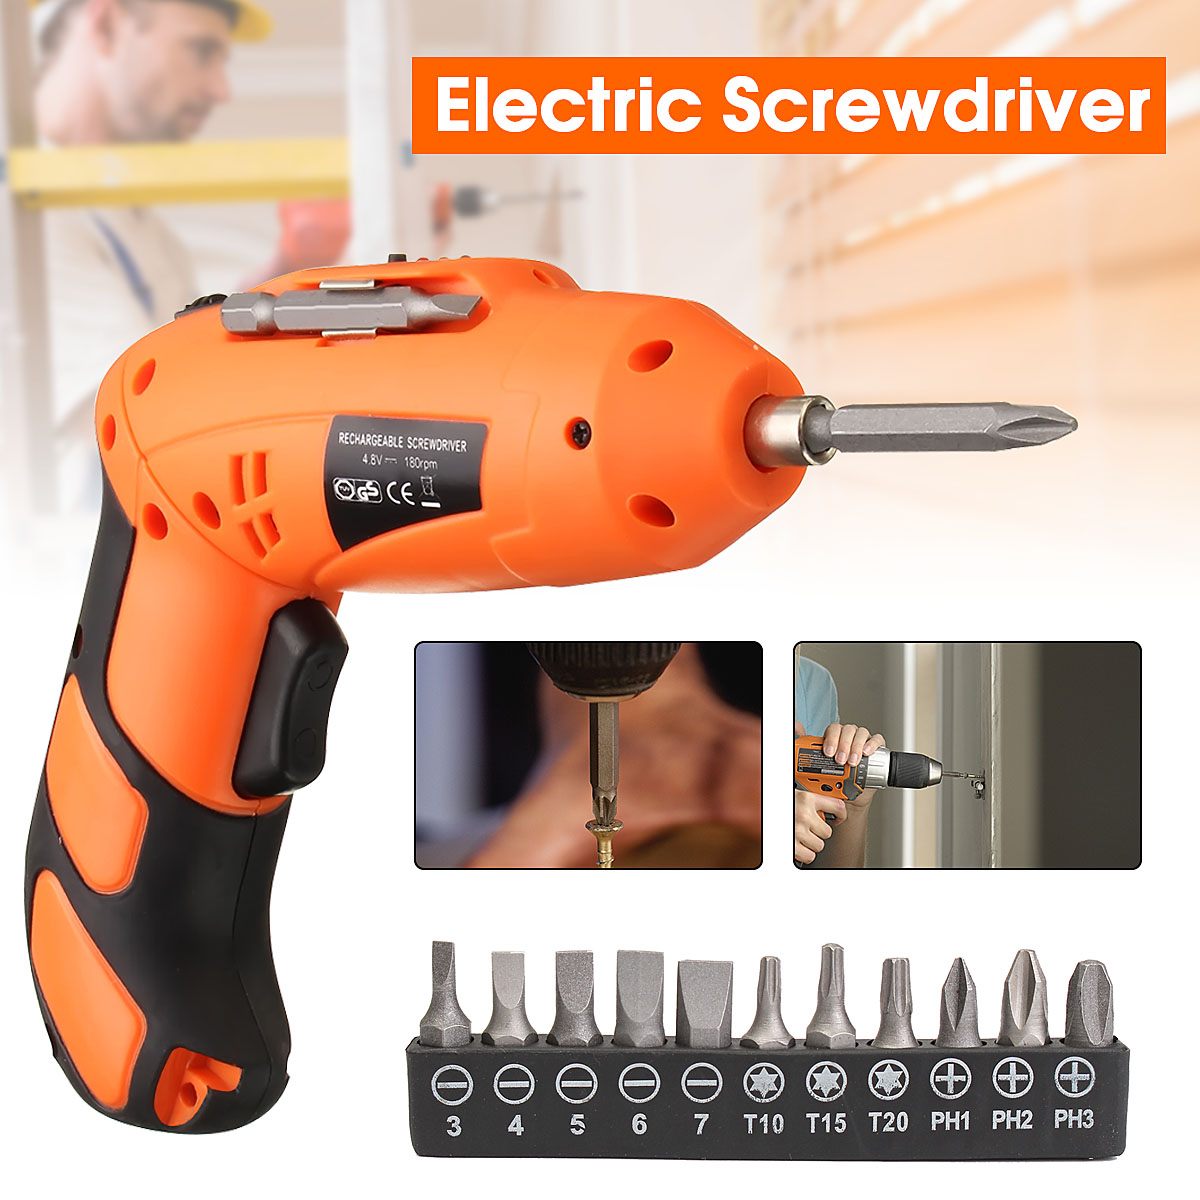 Rechargeable Drill Shank Star Hex Bits Cordless Screwdriver Electric Screwdriver Set +Magnetic Bit Holder 3.6/4.8V